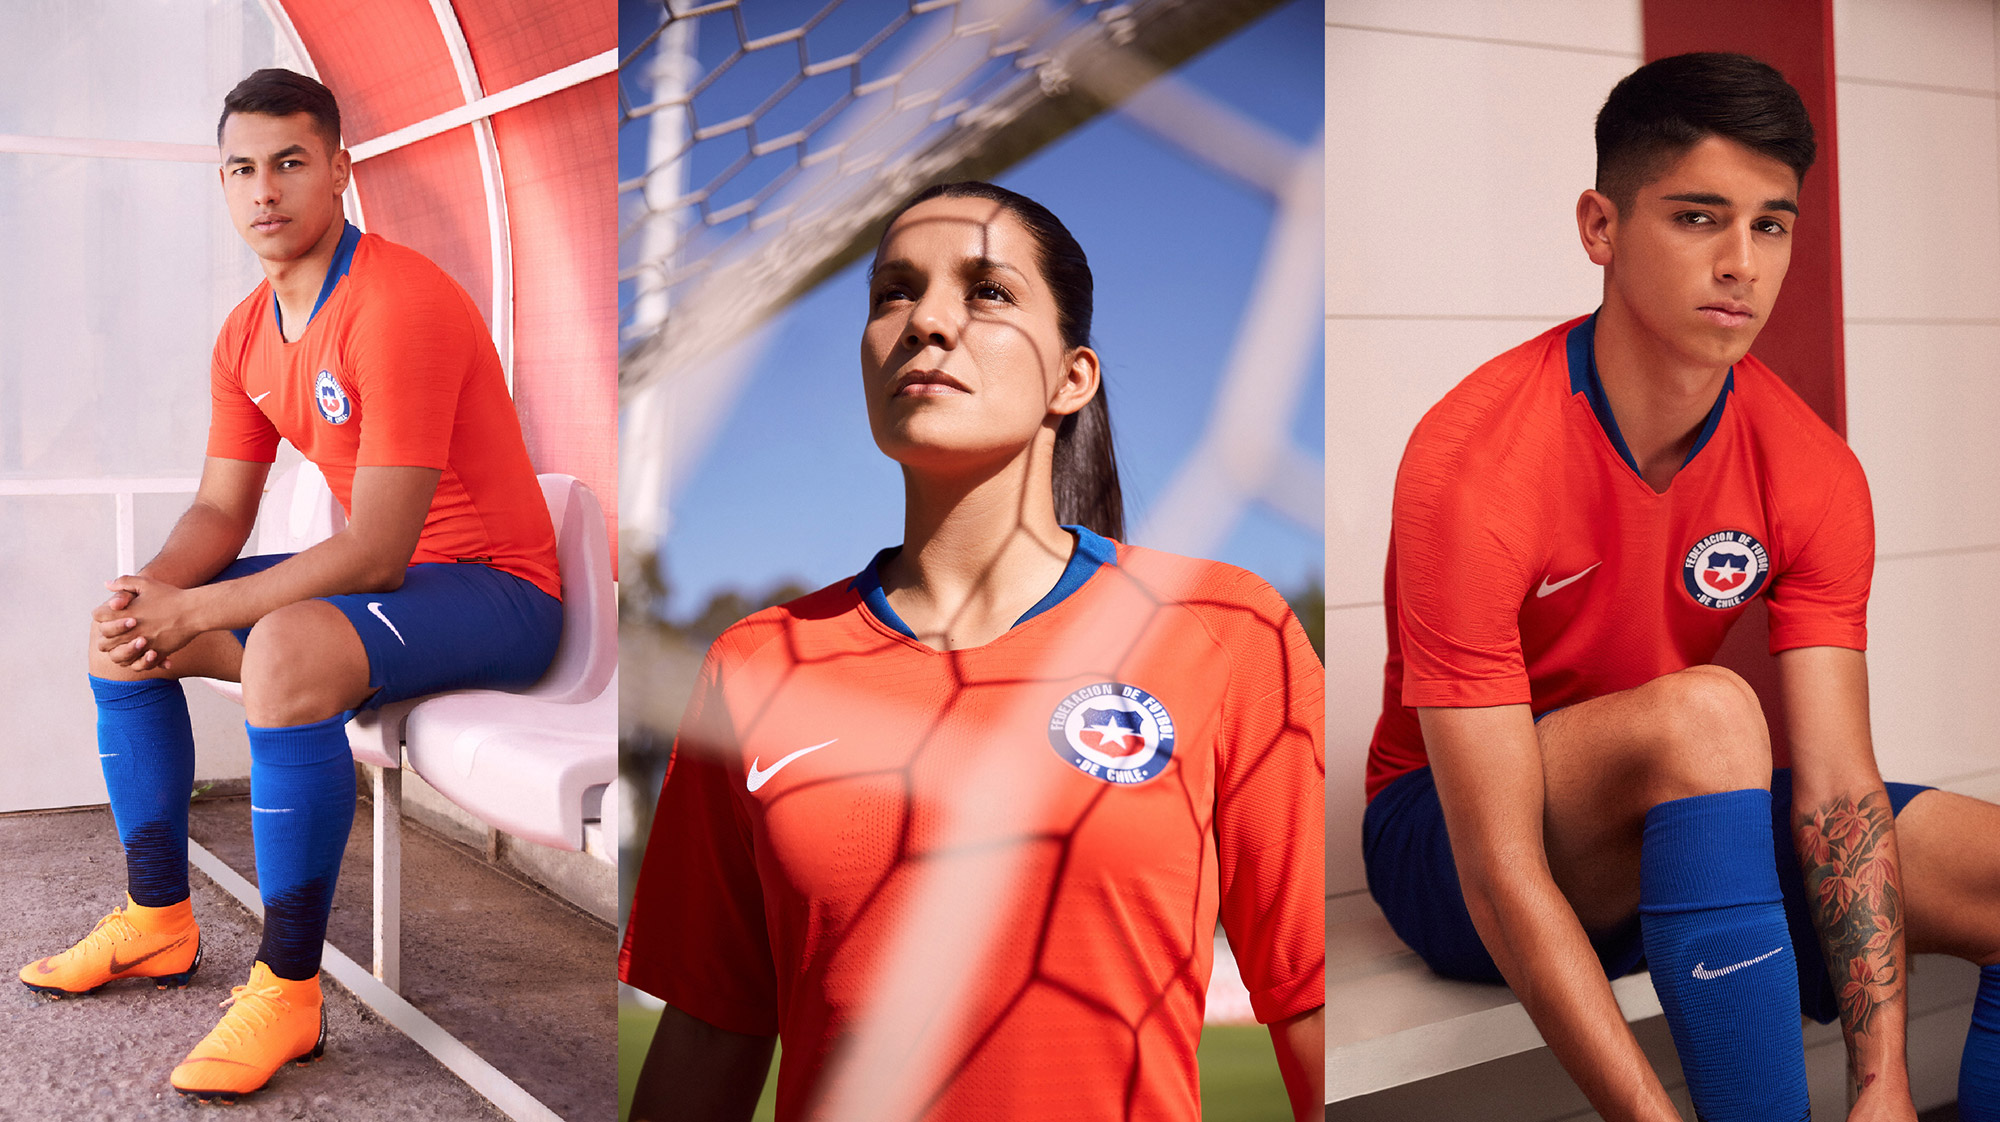 Nike-News-Chile-Soccer-Jersey-Triptic_78488